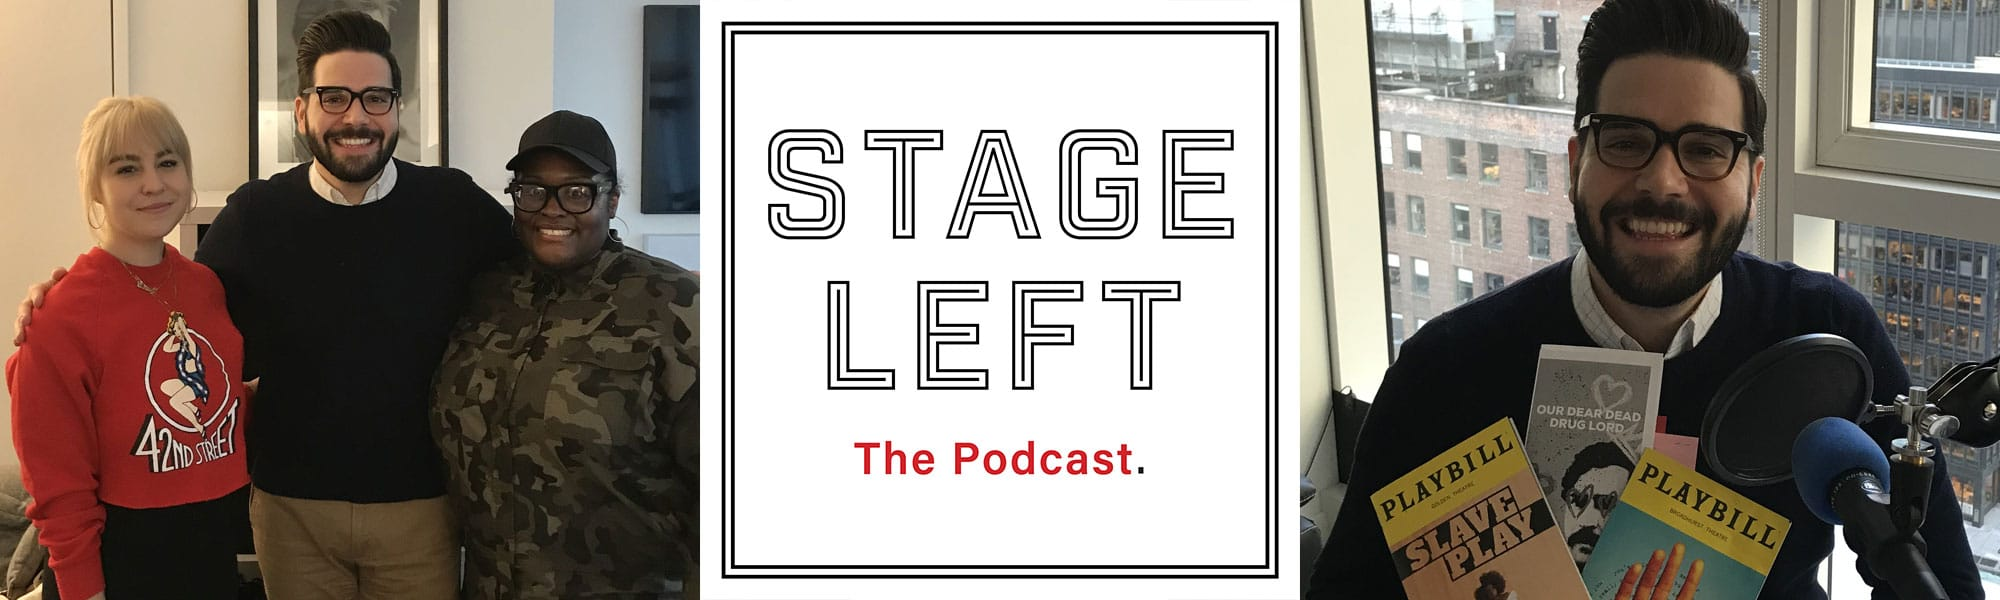 Stage Left Podcast